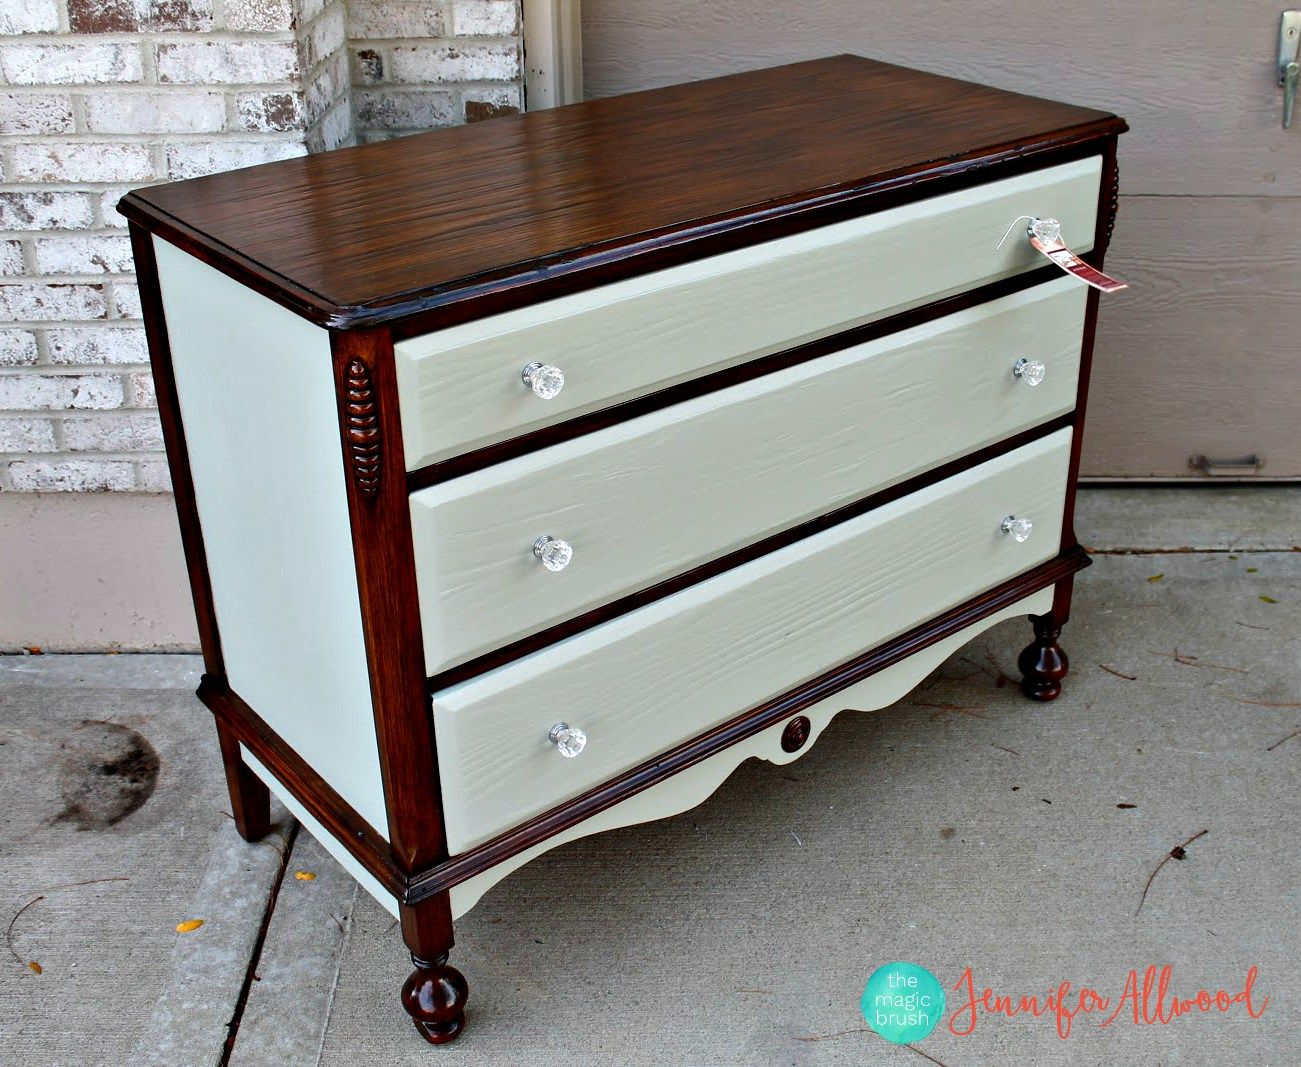 A Lovely Painted And Stained Dresser A Luxurious Mix Stained Dresser Staining Furniture Diy Furniture Drawers